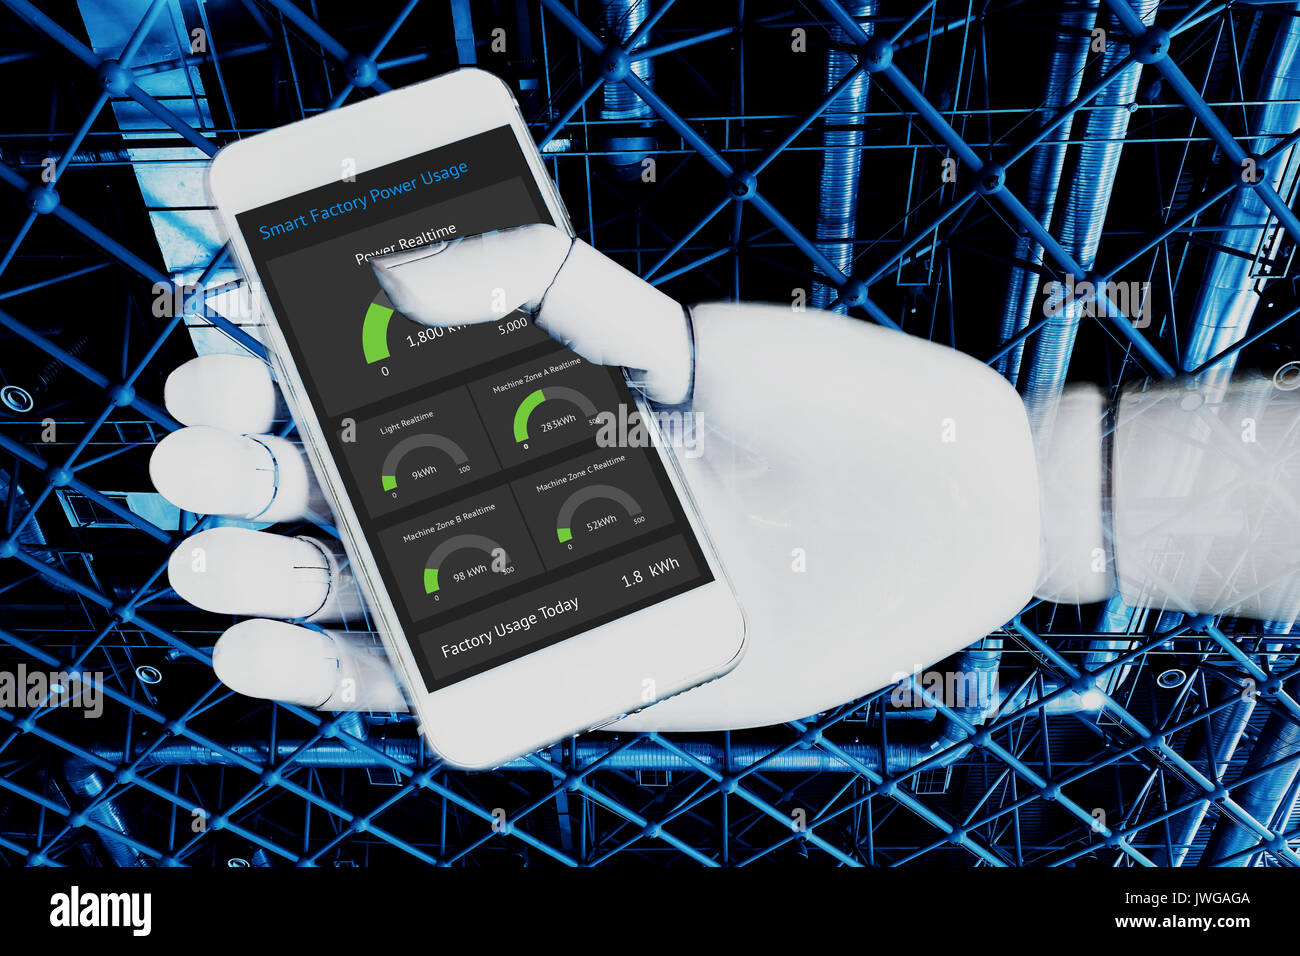 Internet of things , artificial intelligence , industry 4.0 technology network concept. Robot ai hand using white phone to control system power usage  - Stock Image